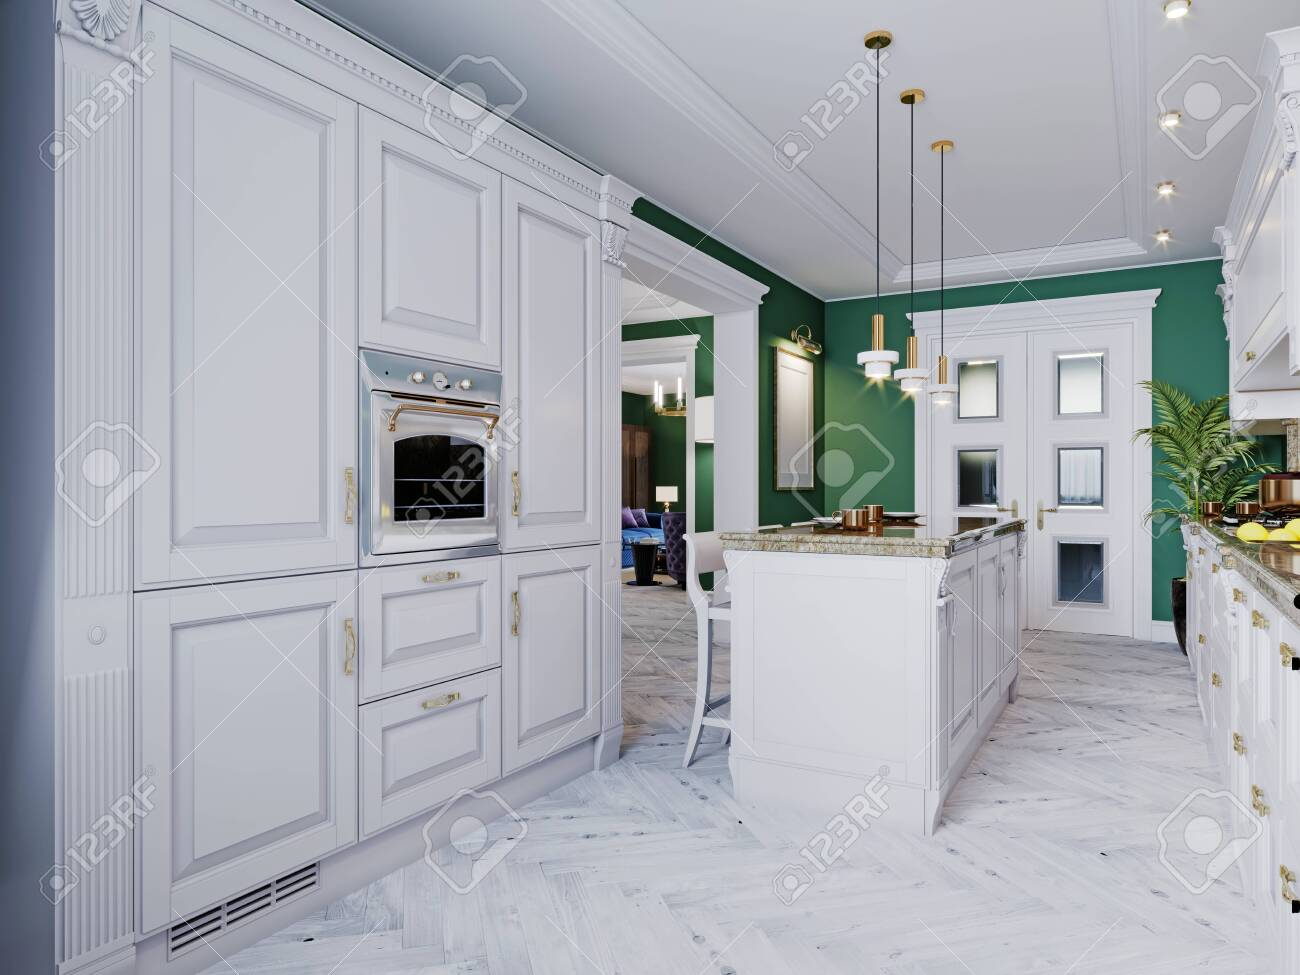 A classic kitchen with white furniture and green walls and a white floor with a ceiling, a kitchen island and a bar counter with three chairs. 3D rendering. - 150530828